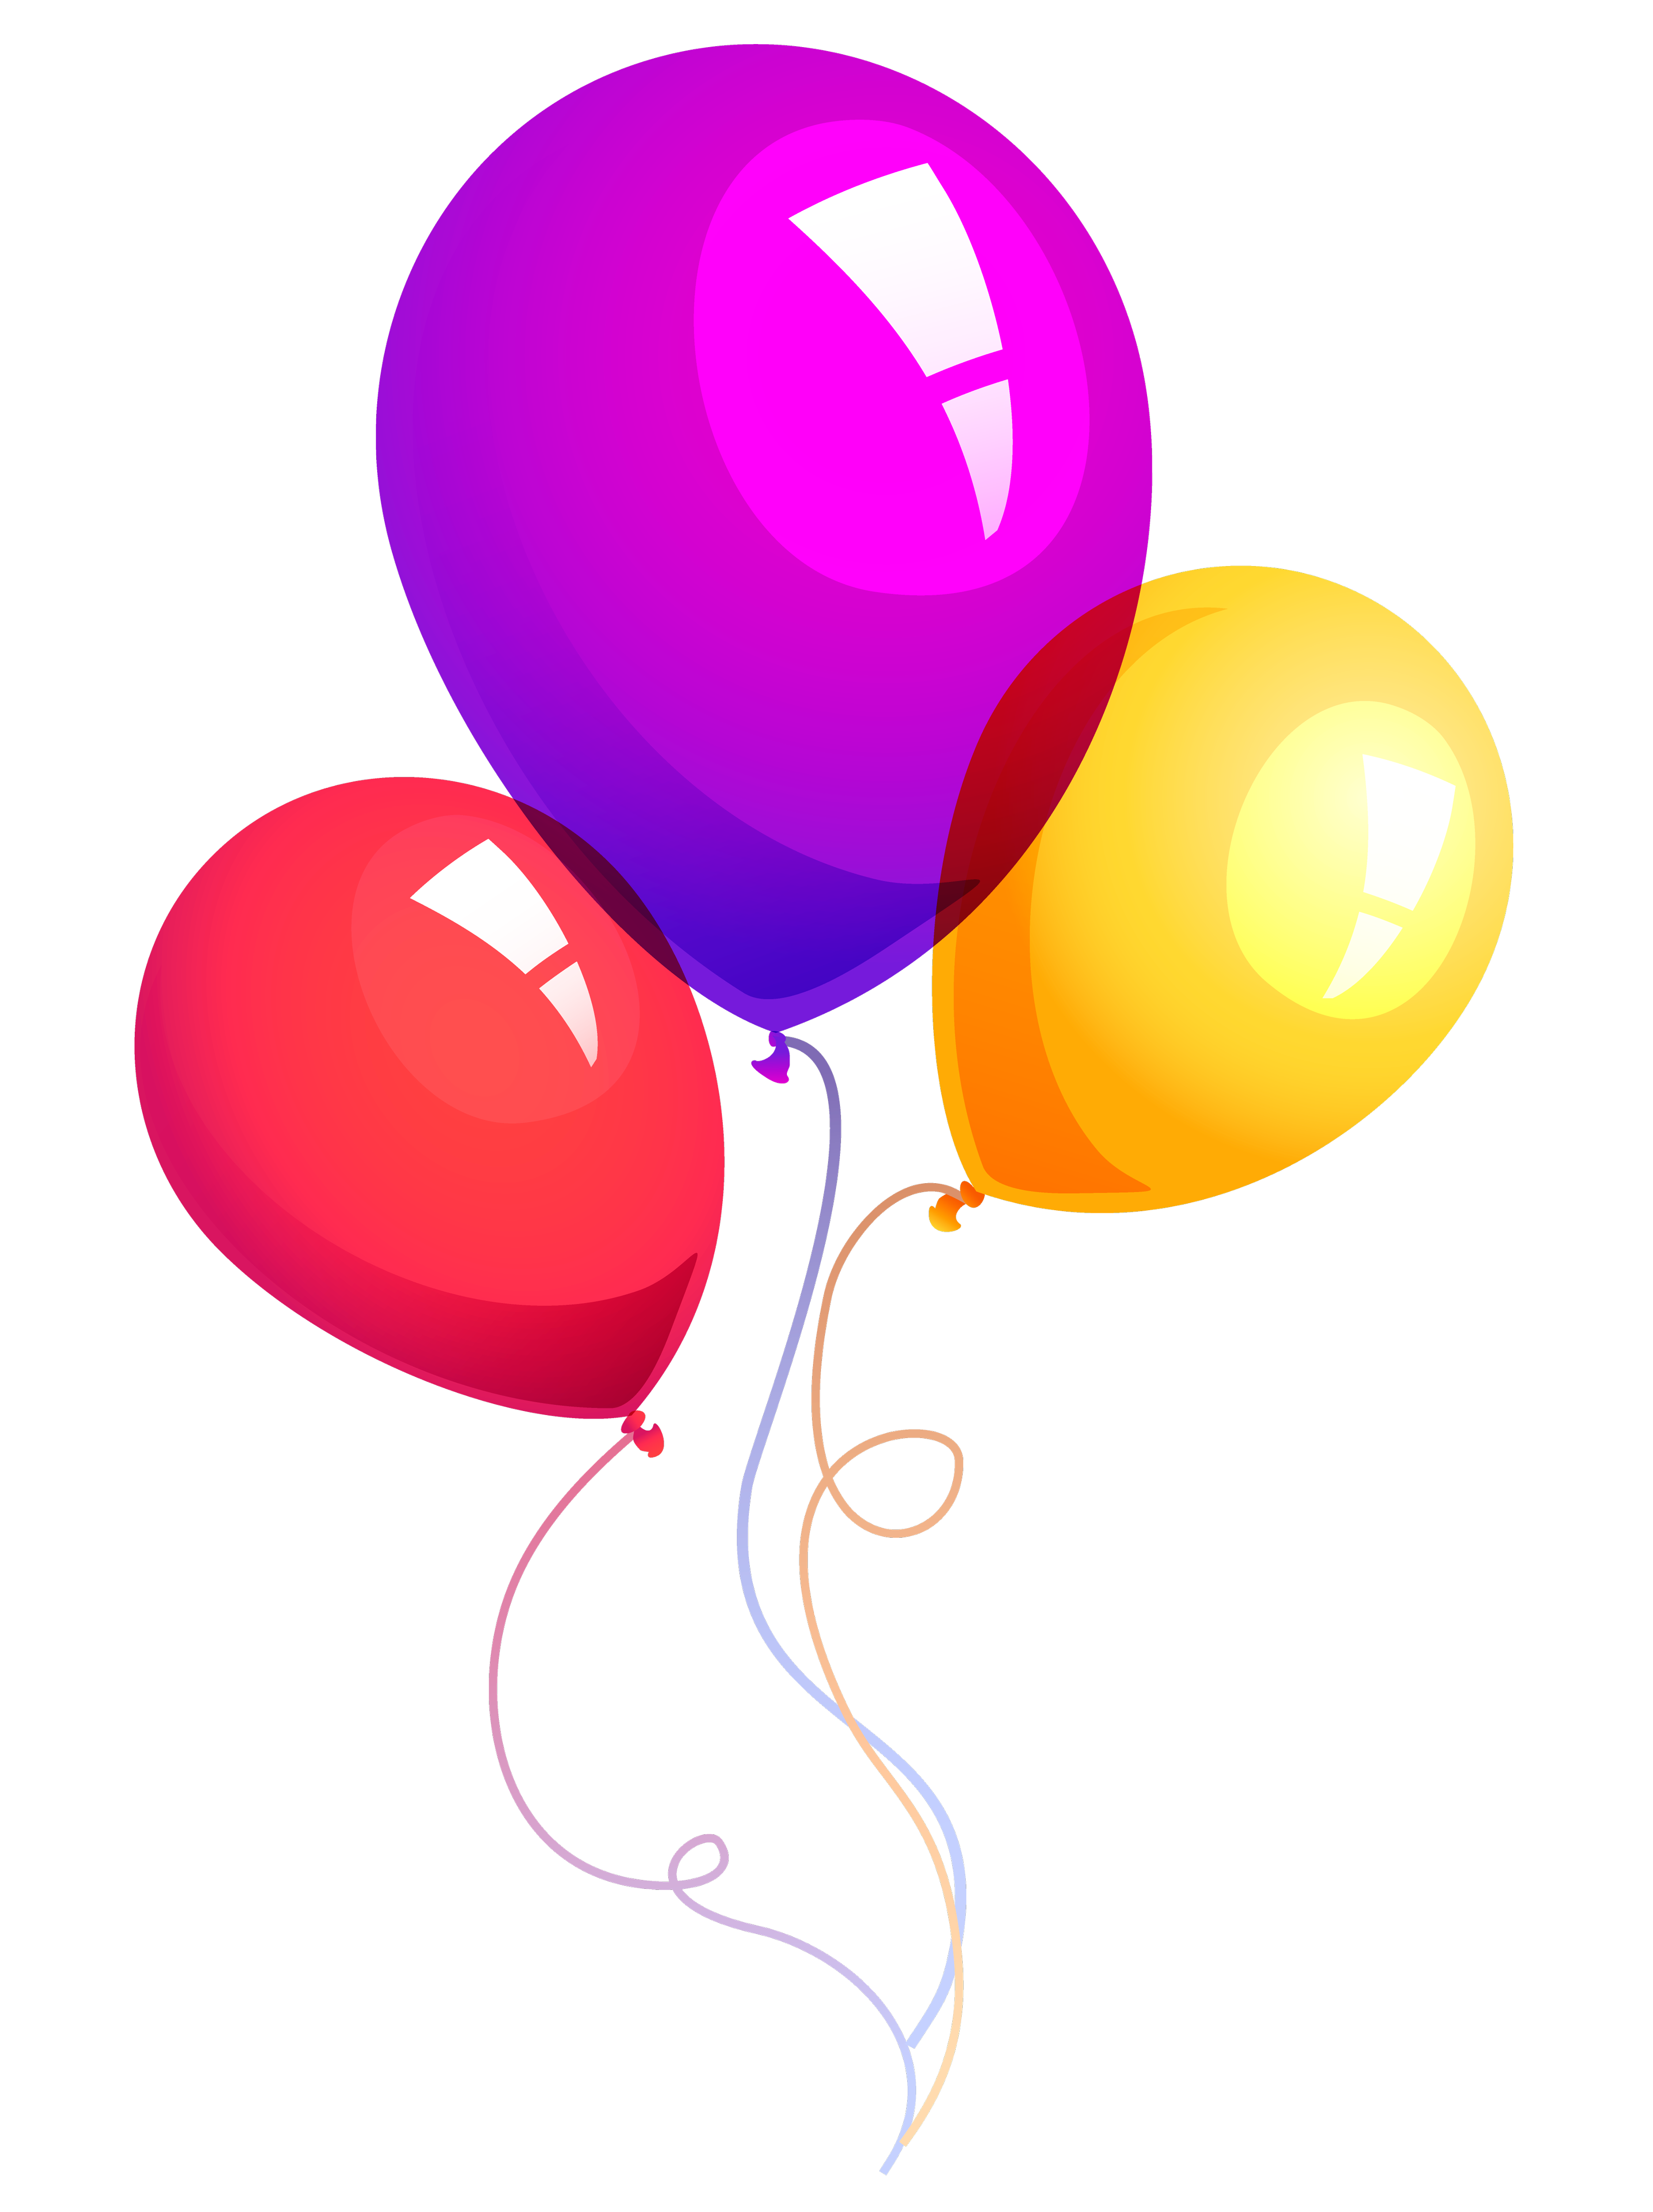 Balloons Png Pic - Balloon, Transparent background PNG HD thumbnail